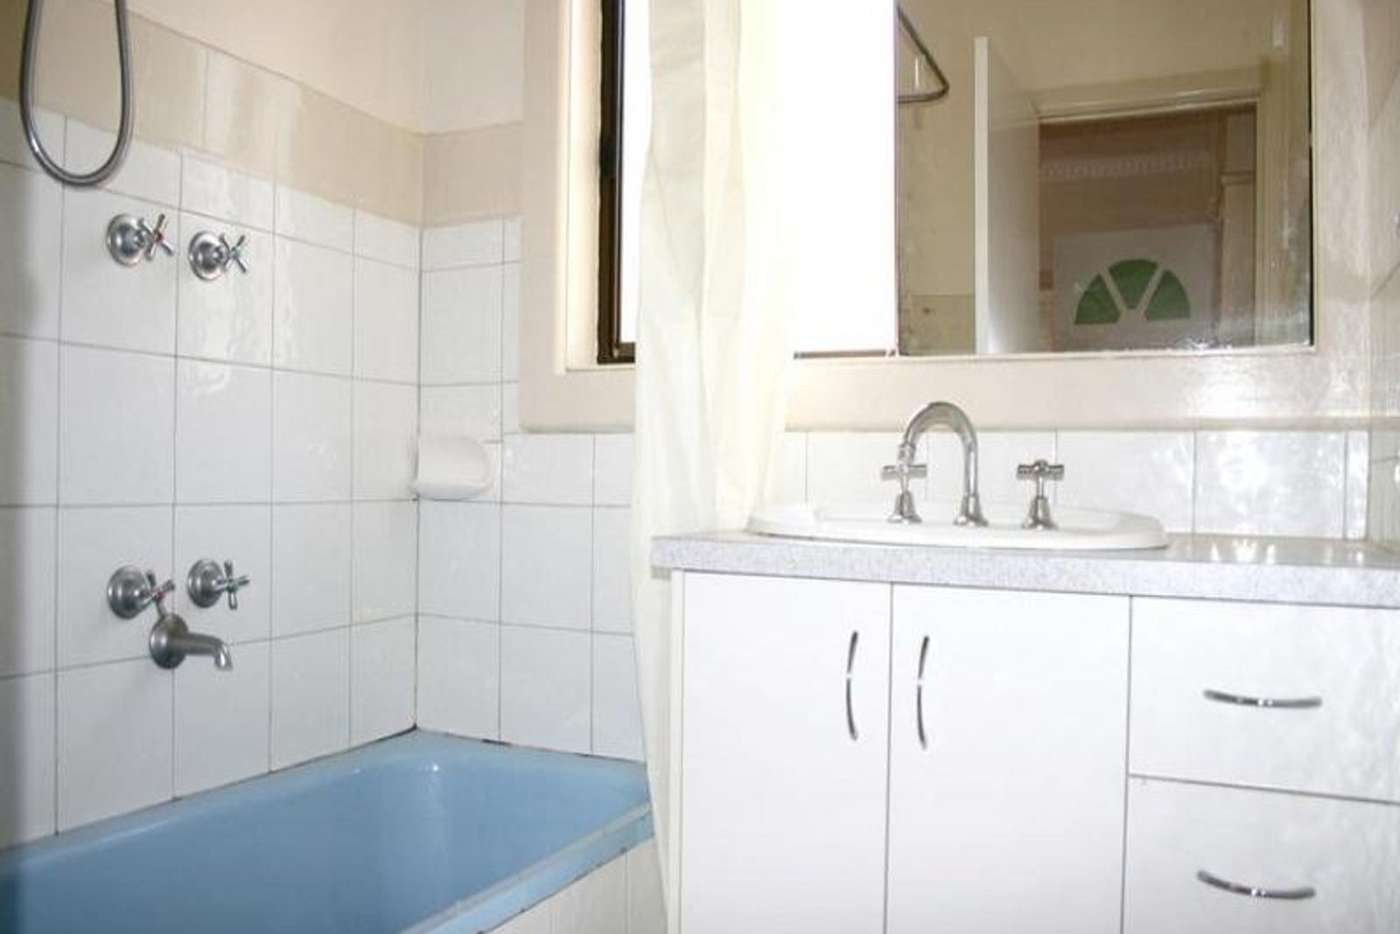 Sixth view of Homely house listing, 1/46 Sandford Avenue, Sunshine North VIC 3020